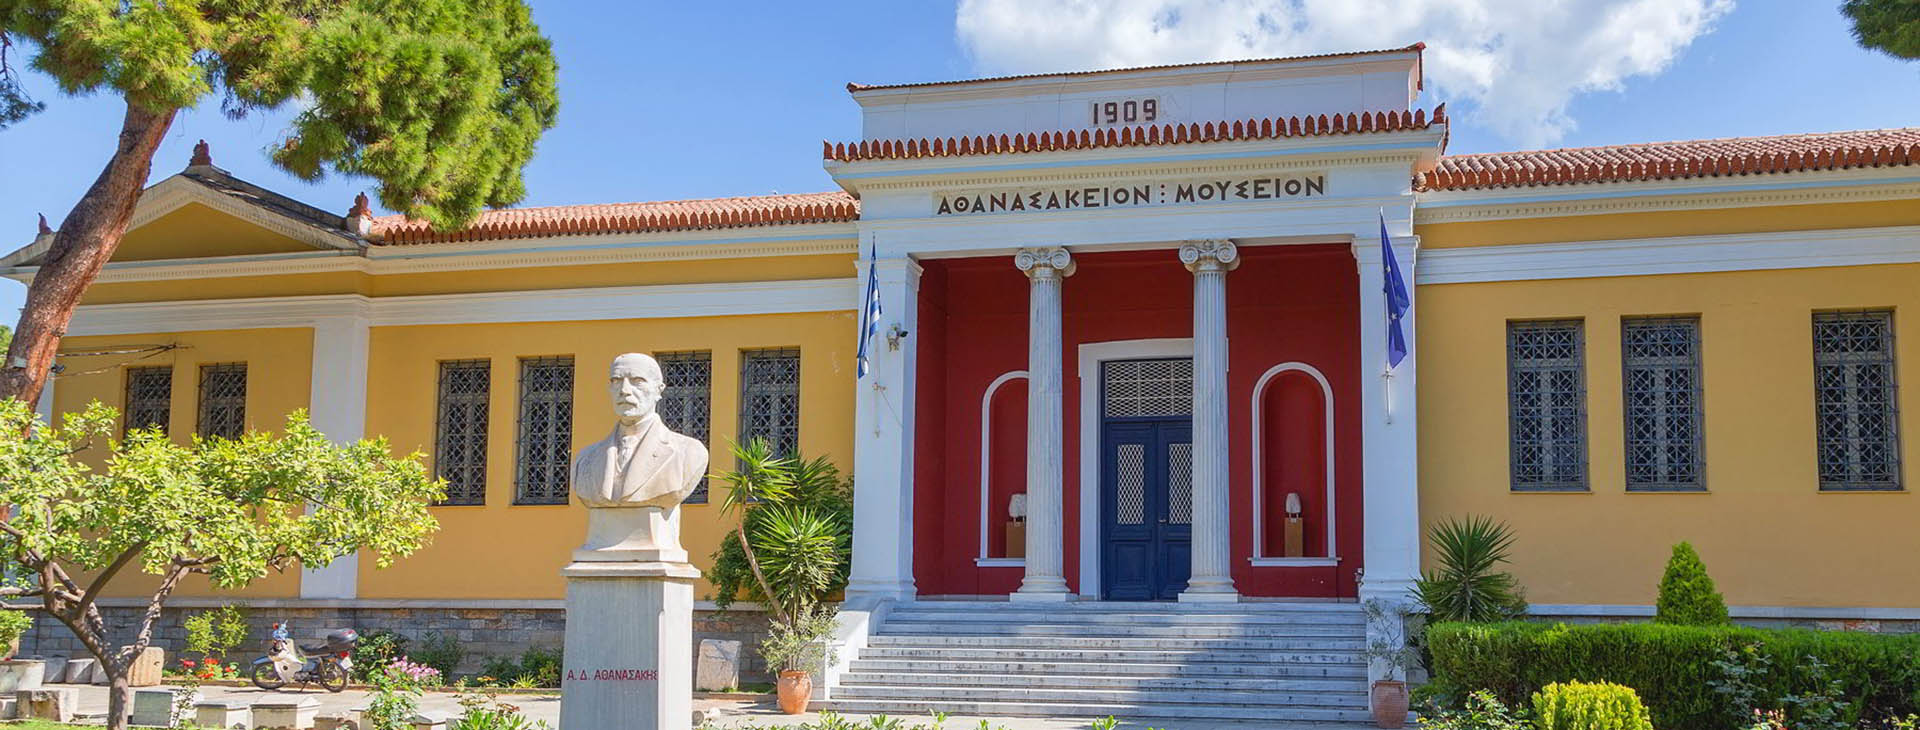 Volos - Archaeological Museum, Magnisia